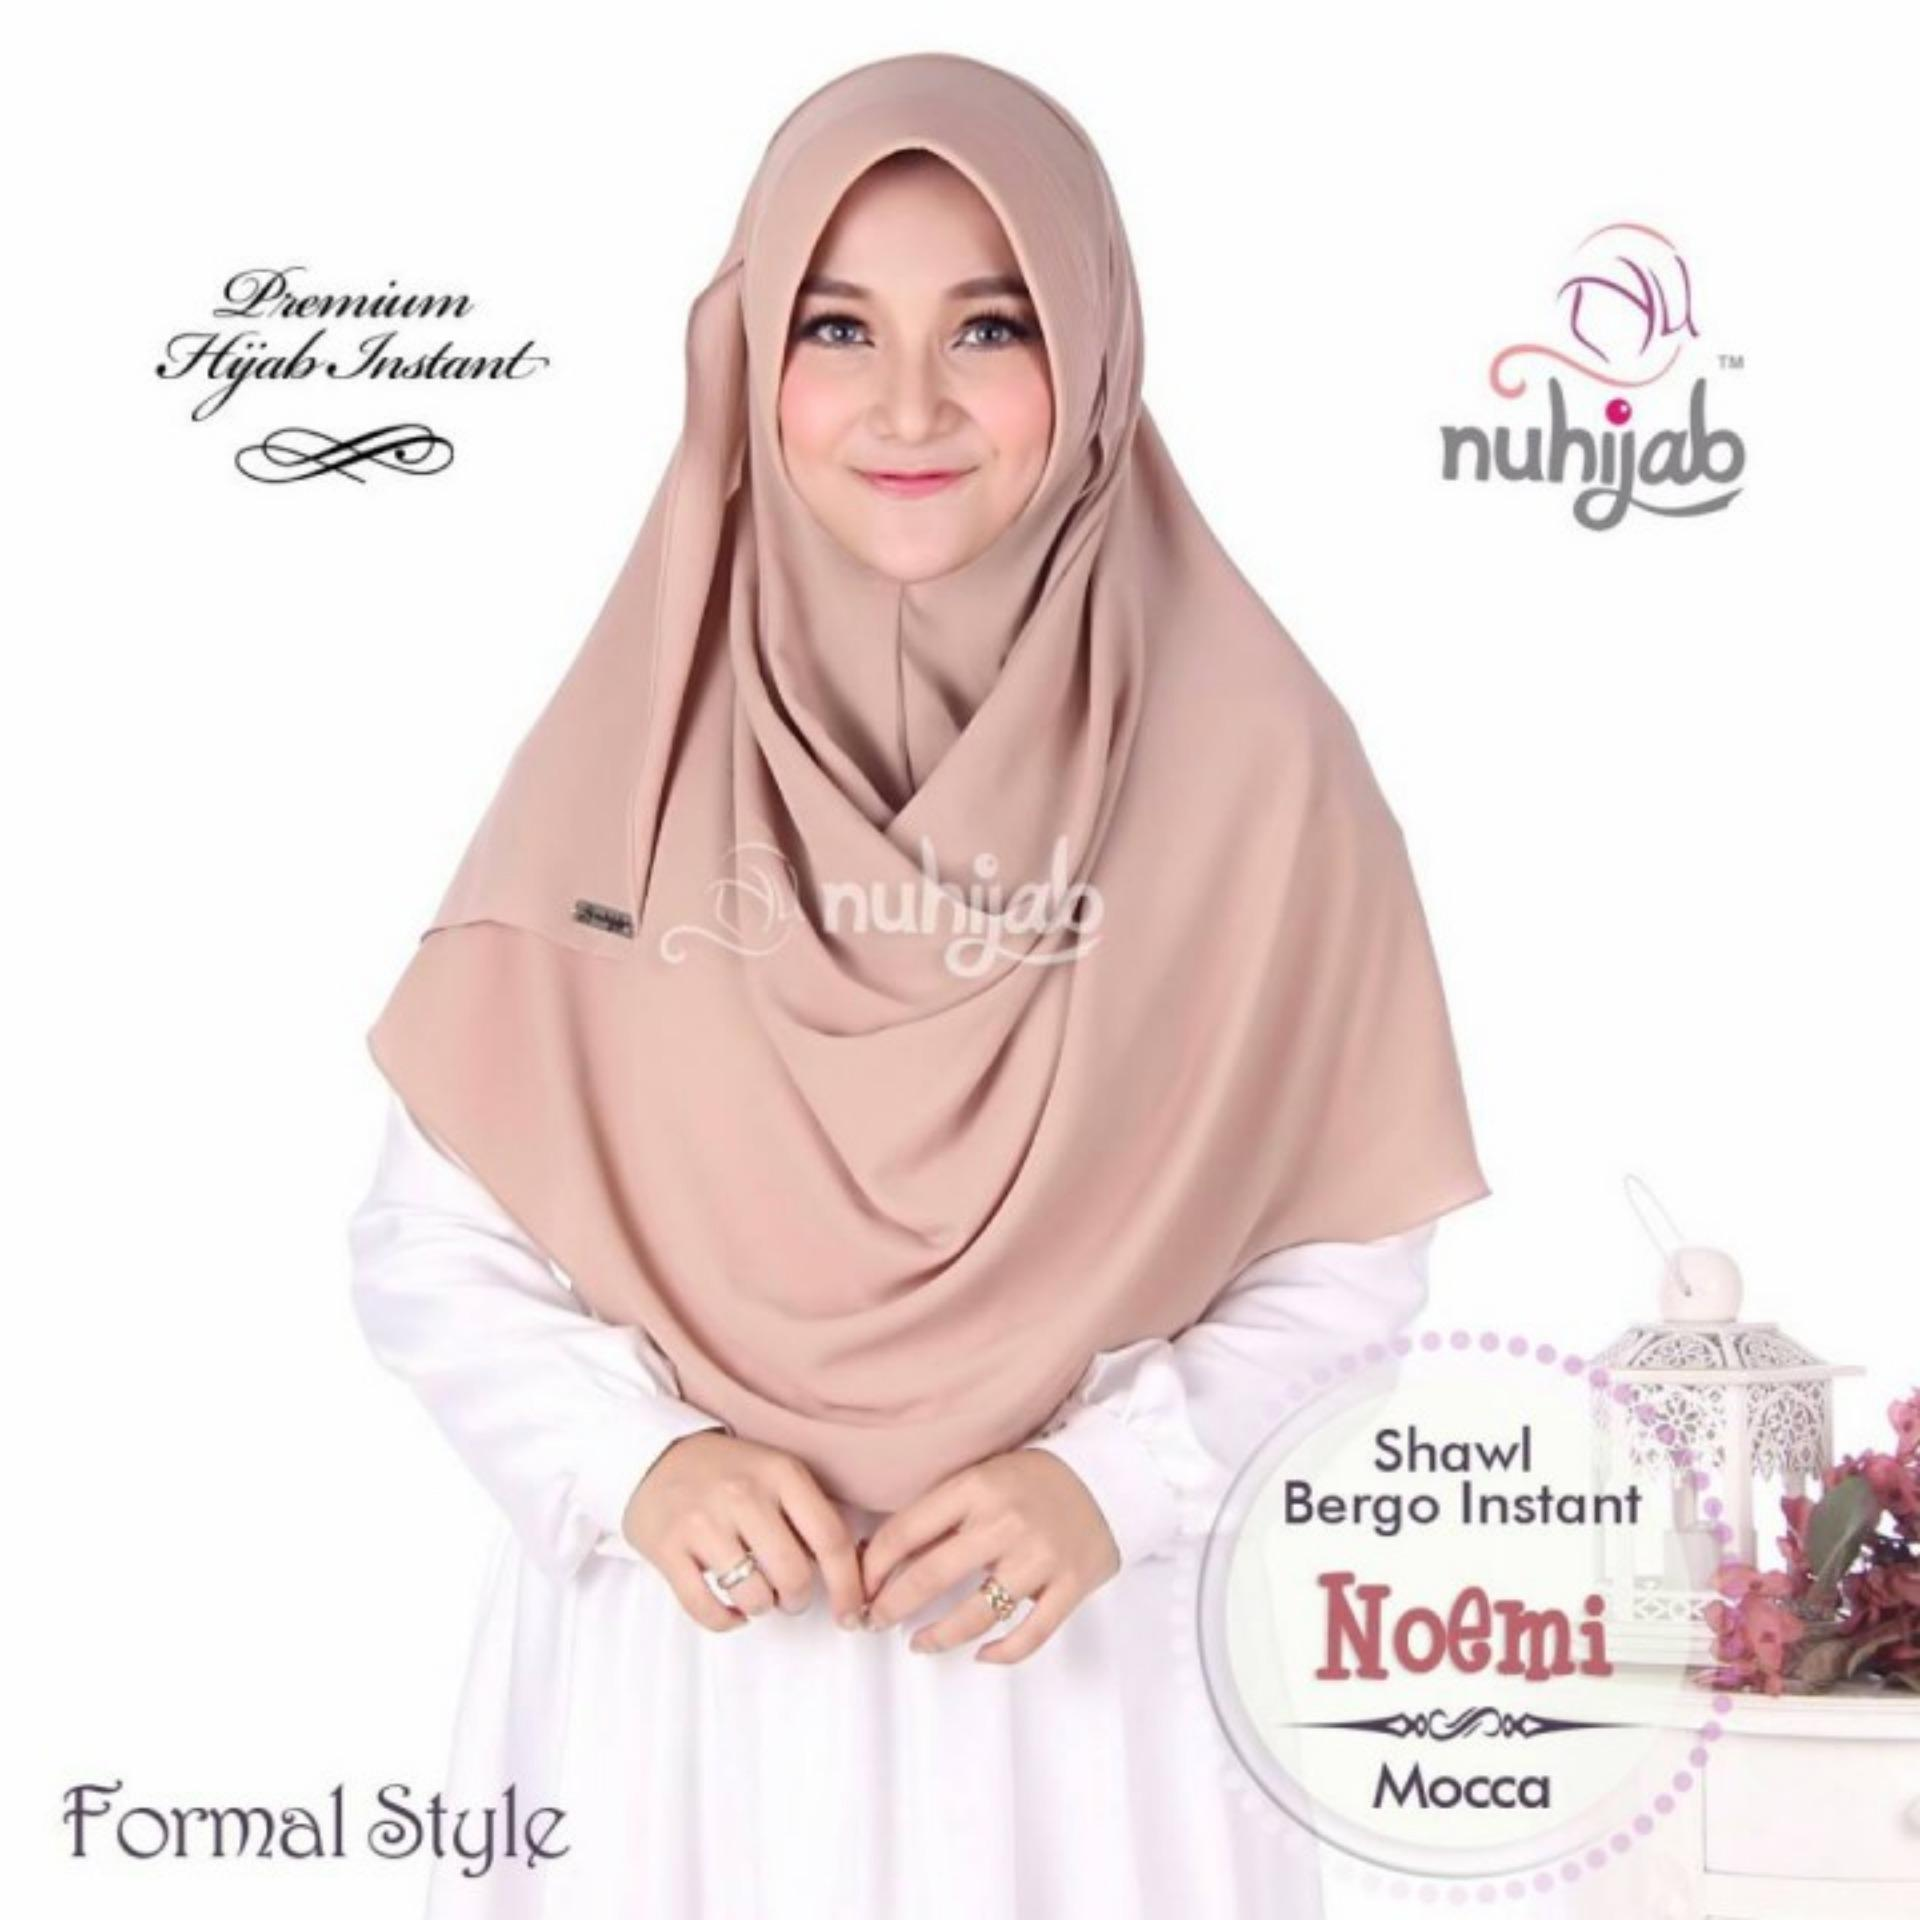 Nuhijab online dating